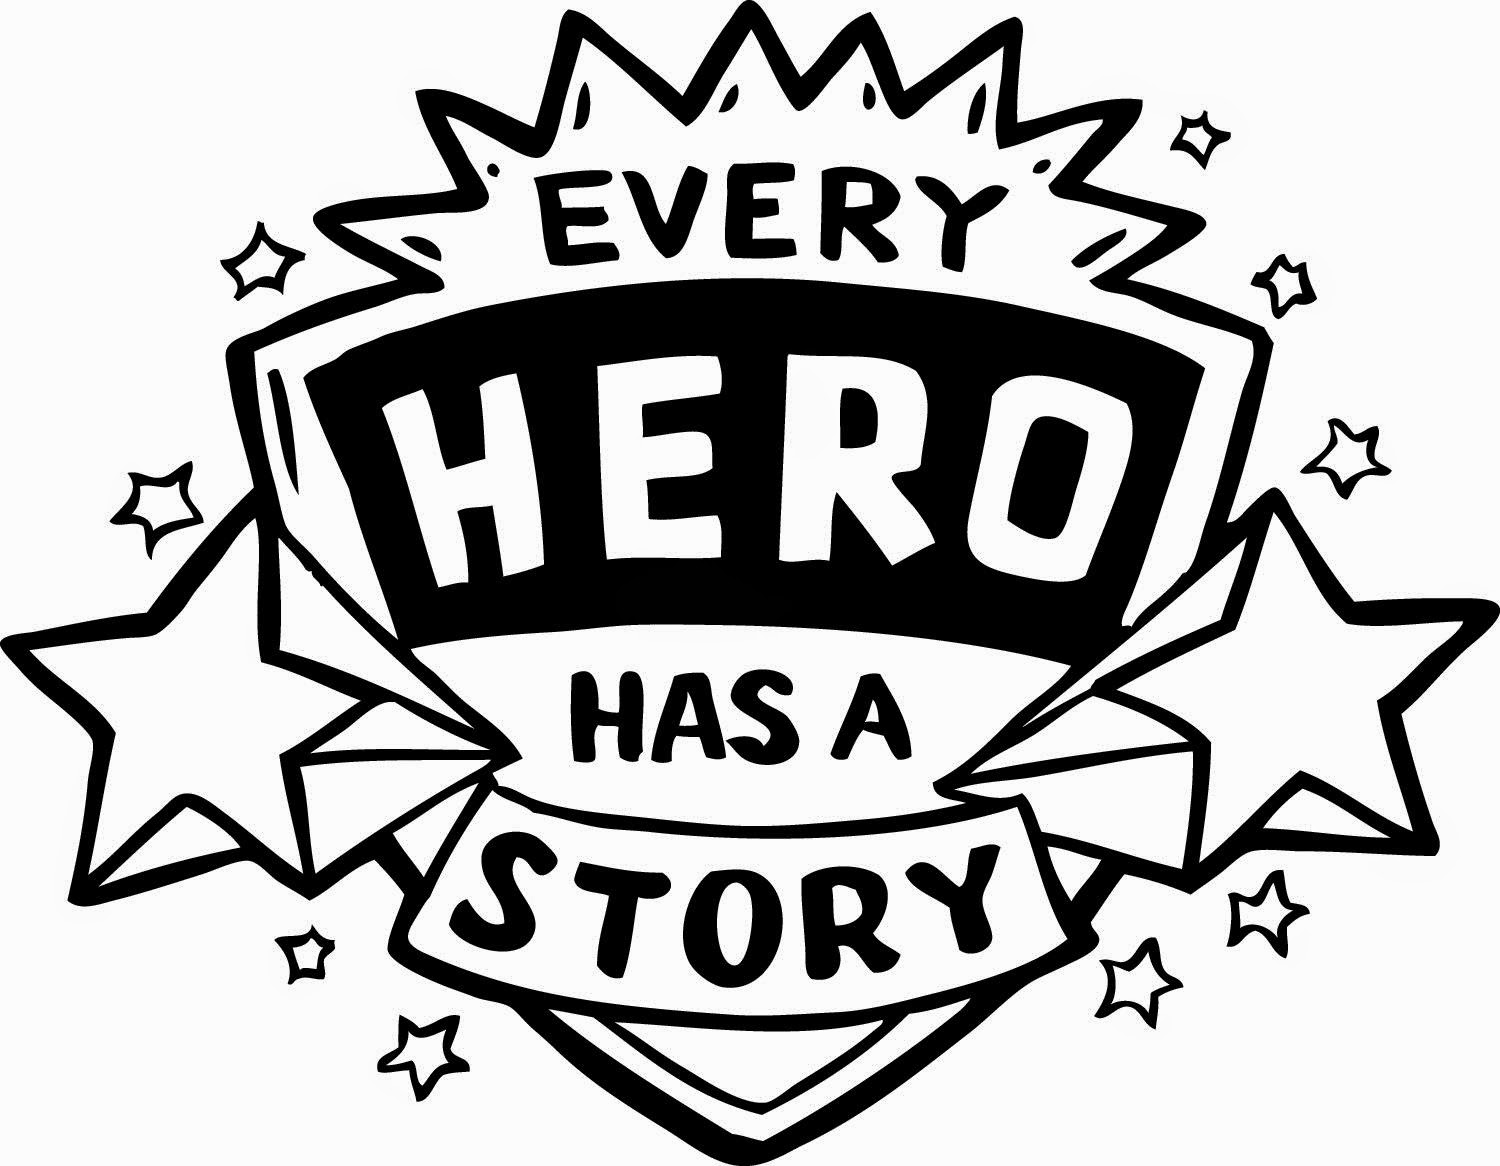 Summer reading 2015 coloring pages - Every Hero Has A Story